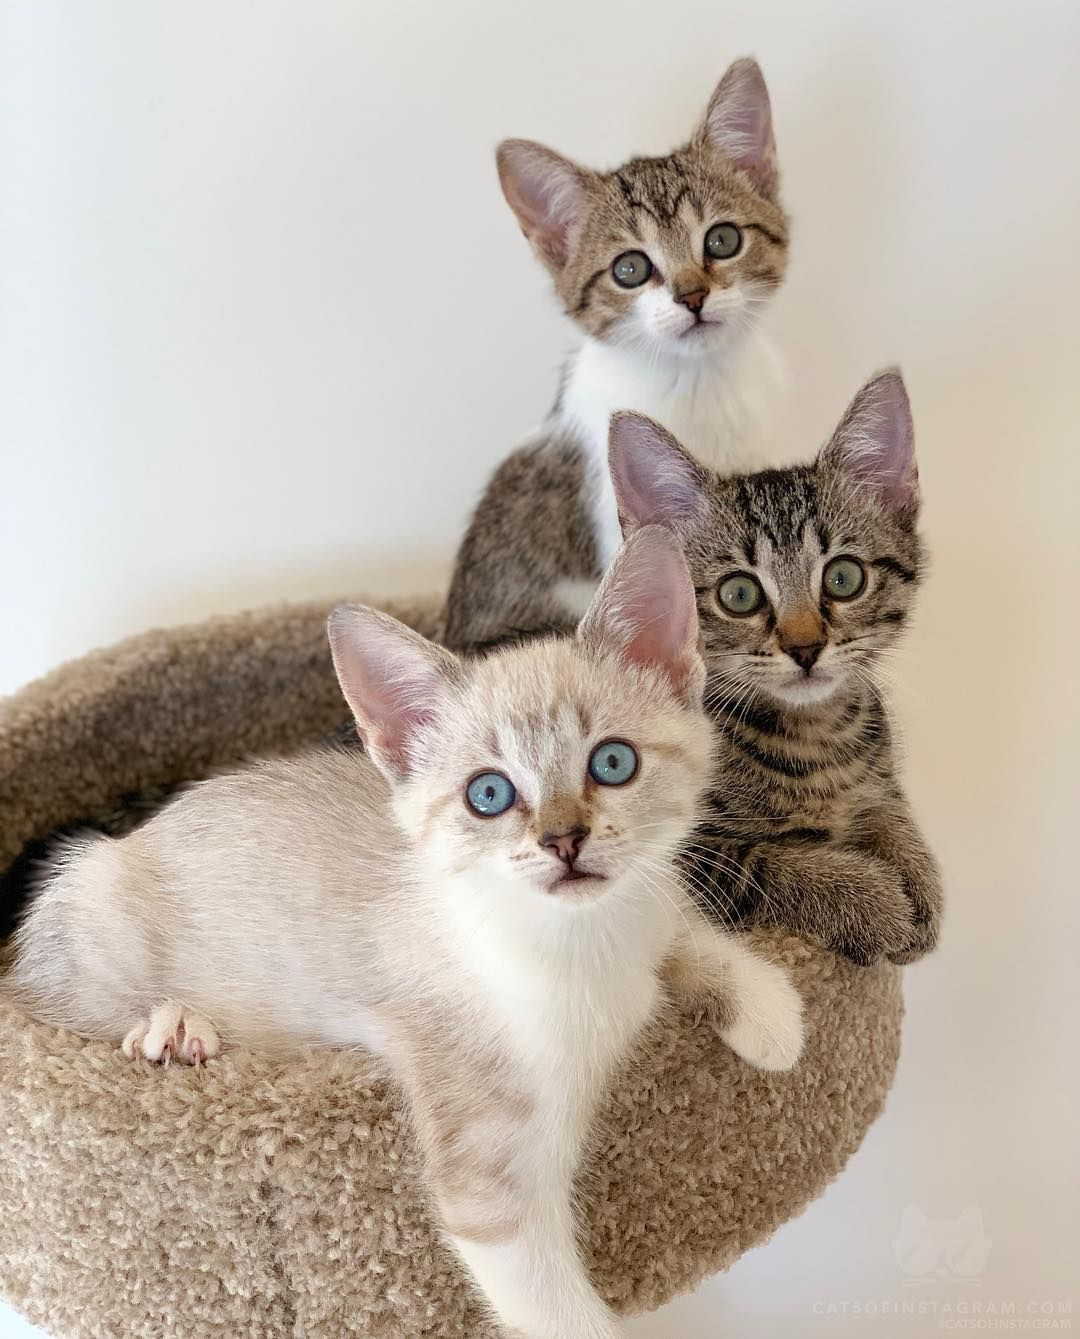 Twix Tootsie Roll And Twinkie One Of My Favorite Bunch That I Fostered From Music Indieartist Chicago Huisdieren Poesje Katten